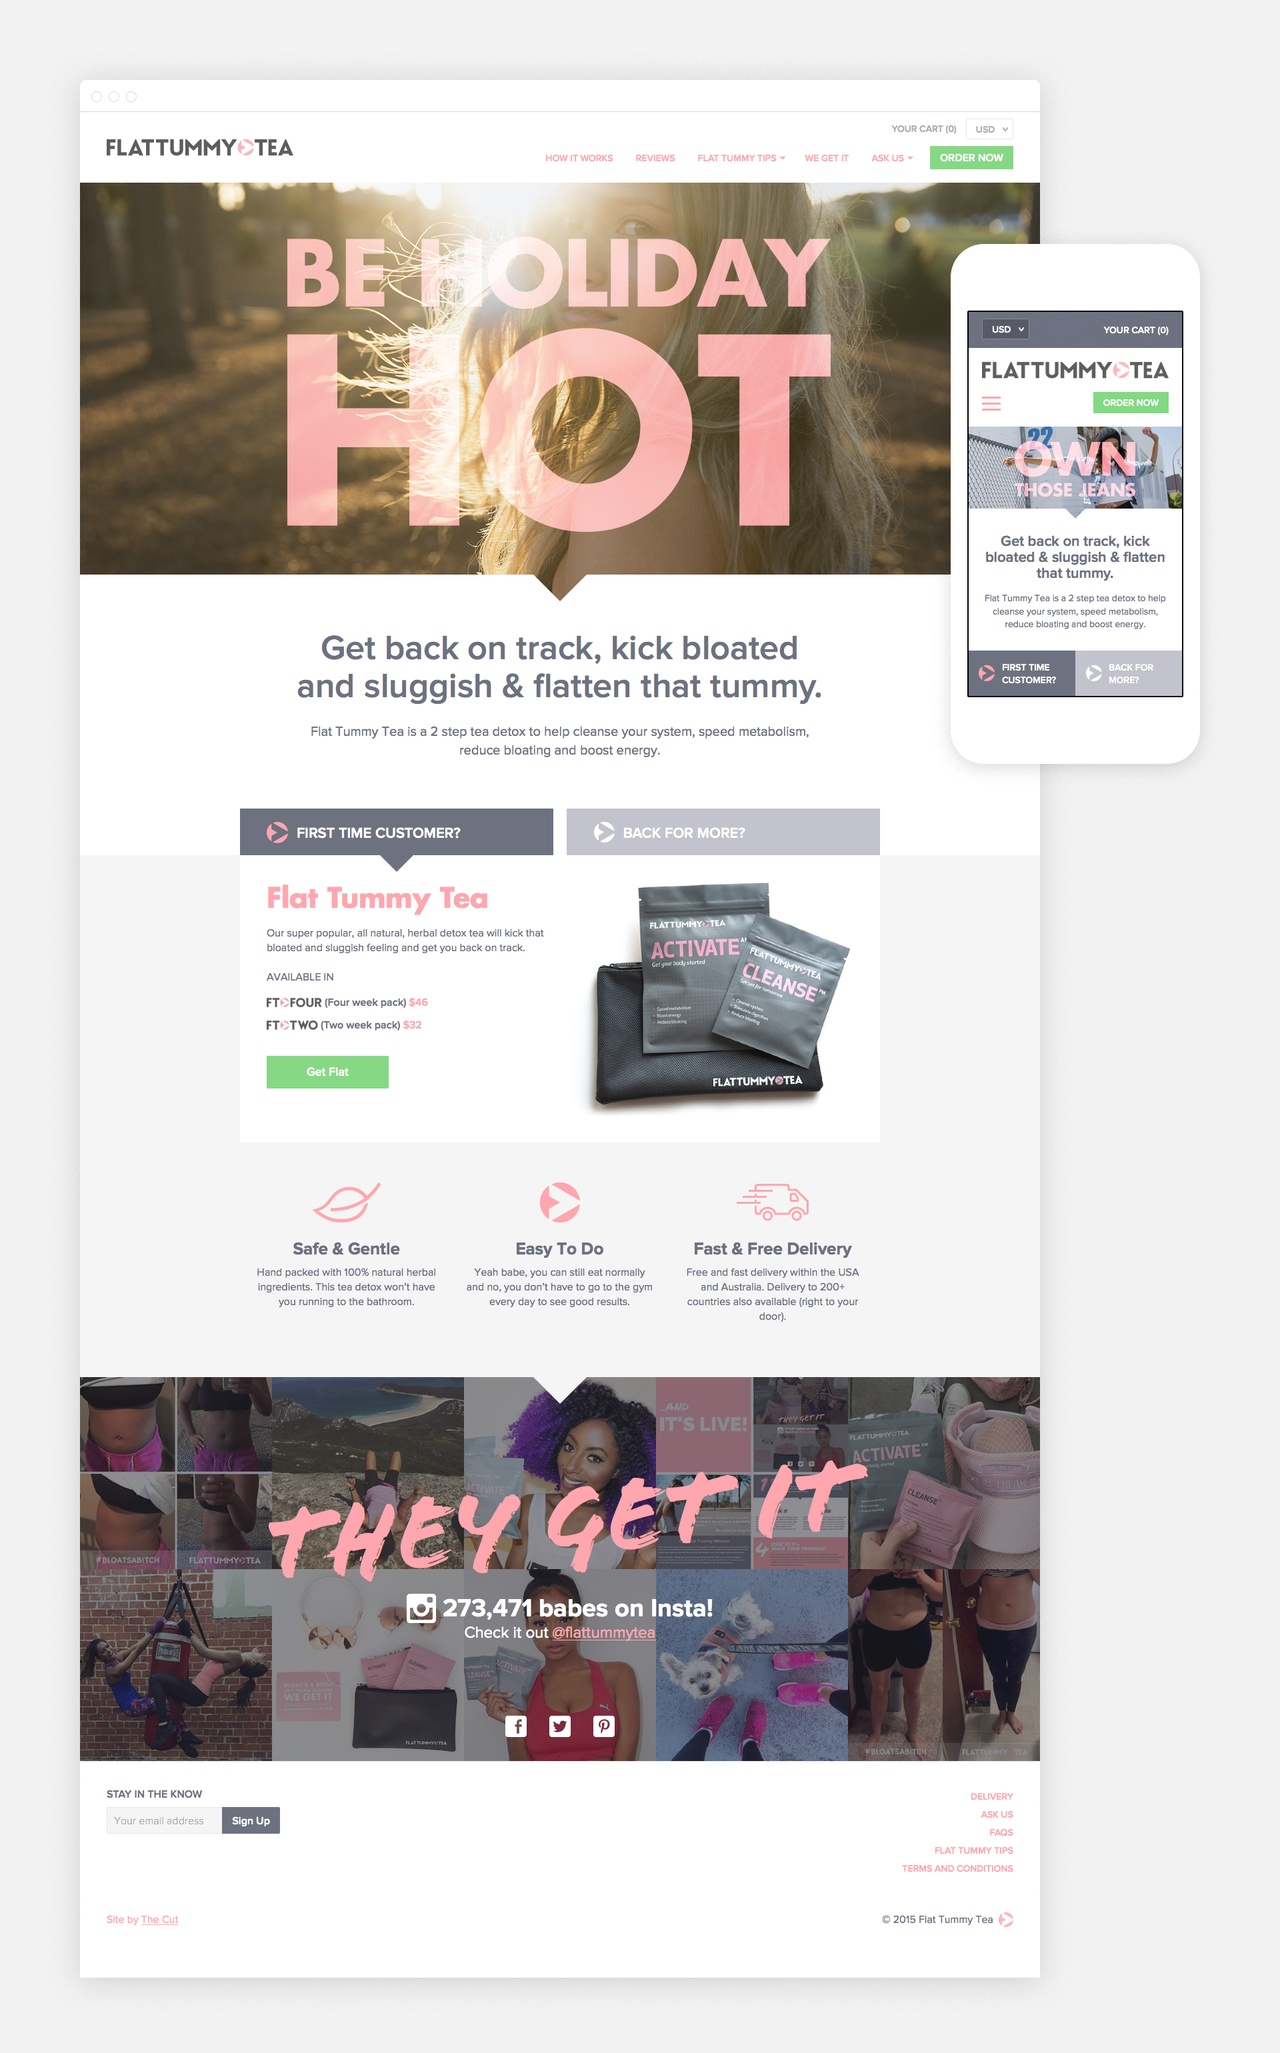 The Homepage combines big branding with purchase Calls To Action